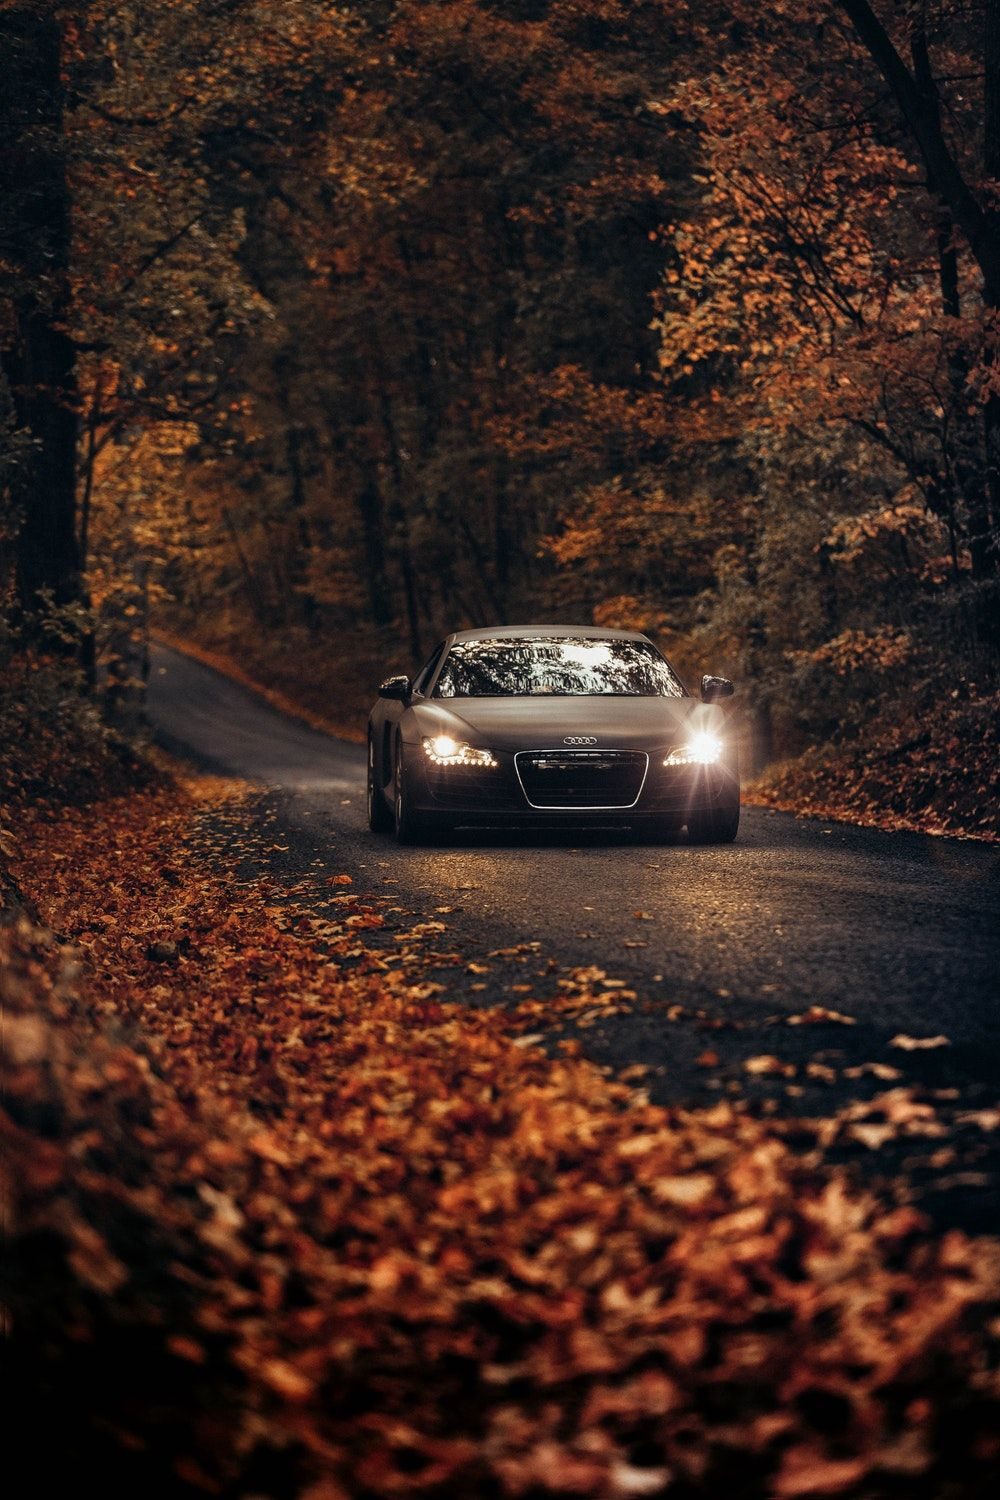 Best 500 Car Photos Spectacular Download Car Images Pictures Unsplash Car Wallpapers Audi Cars Car Photography